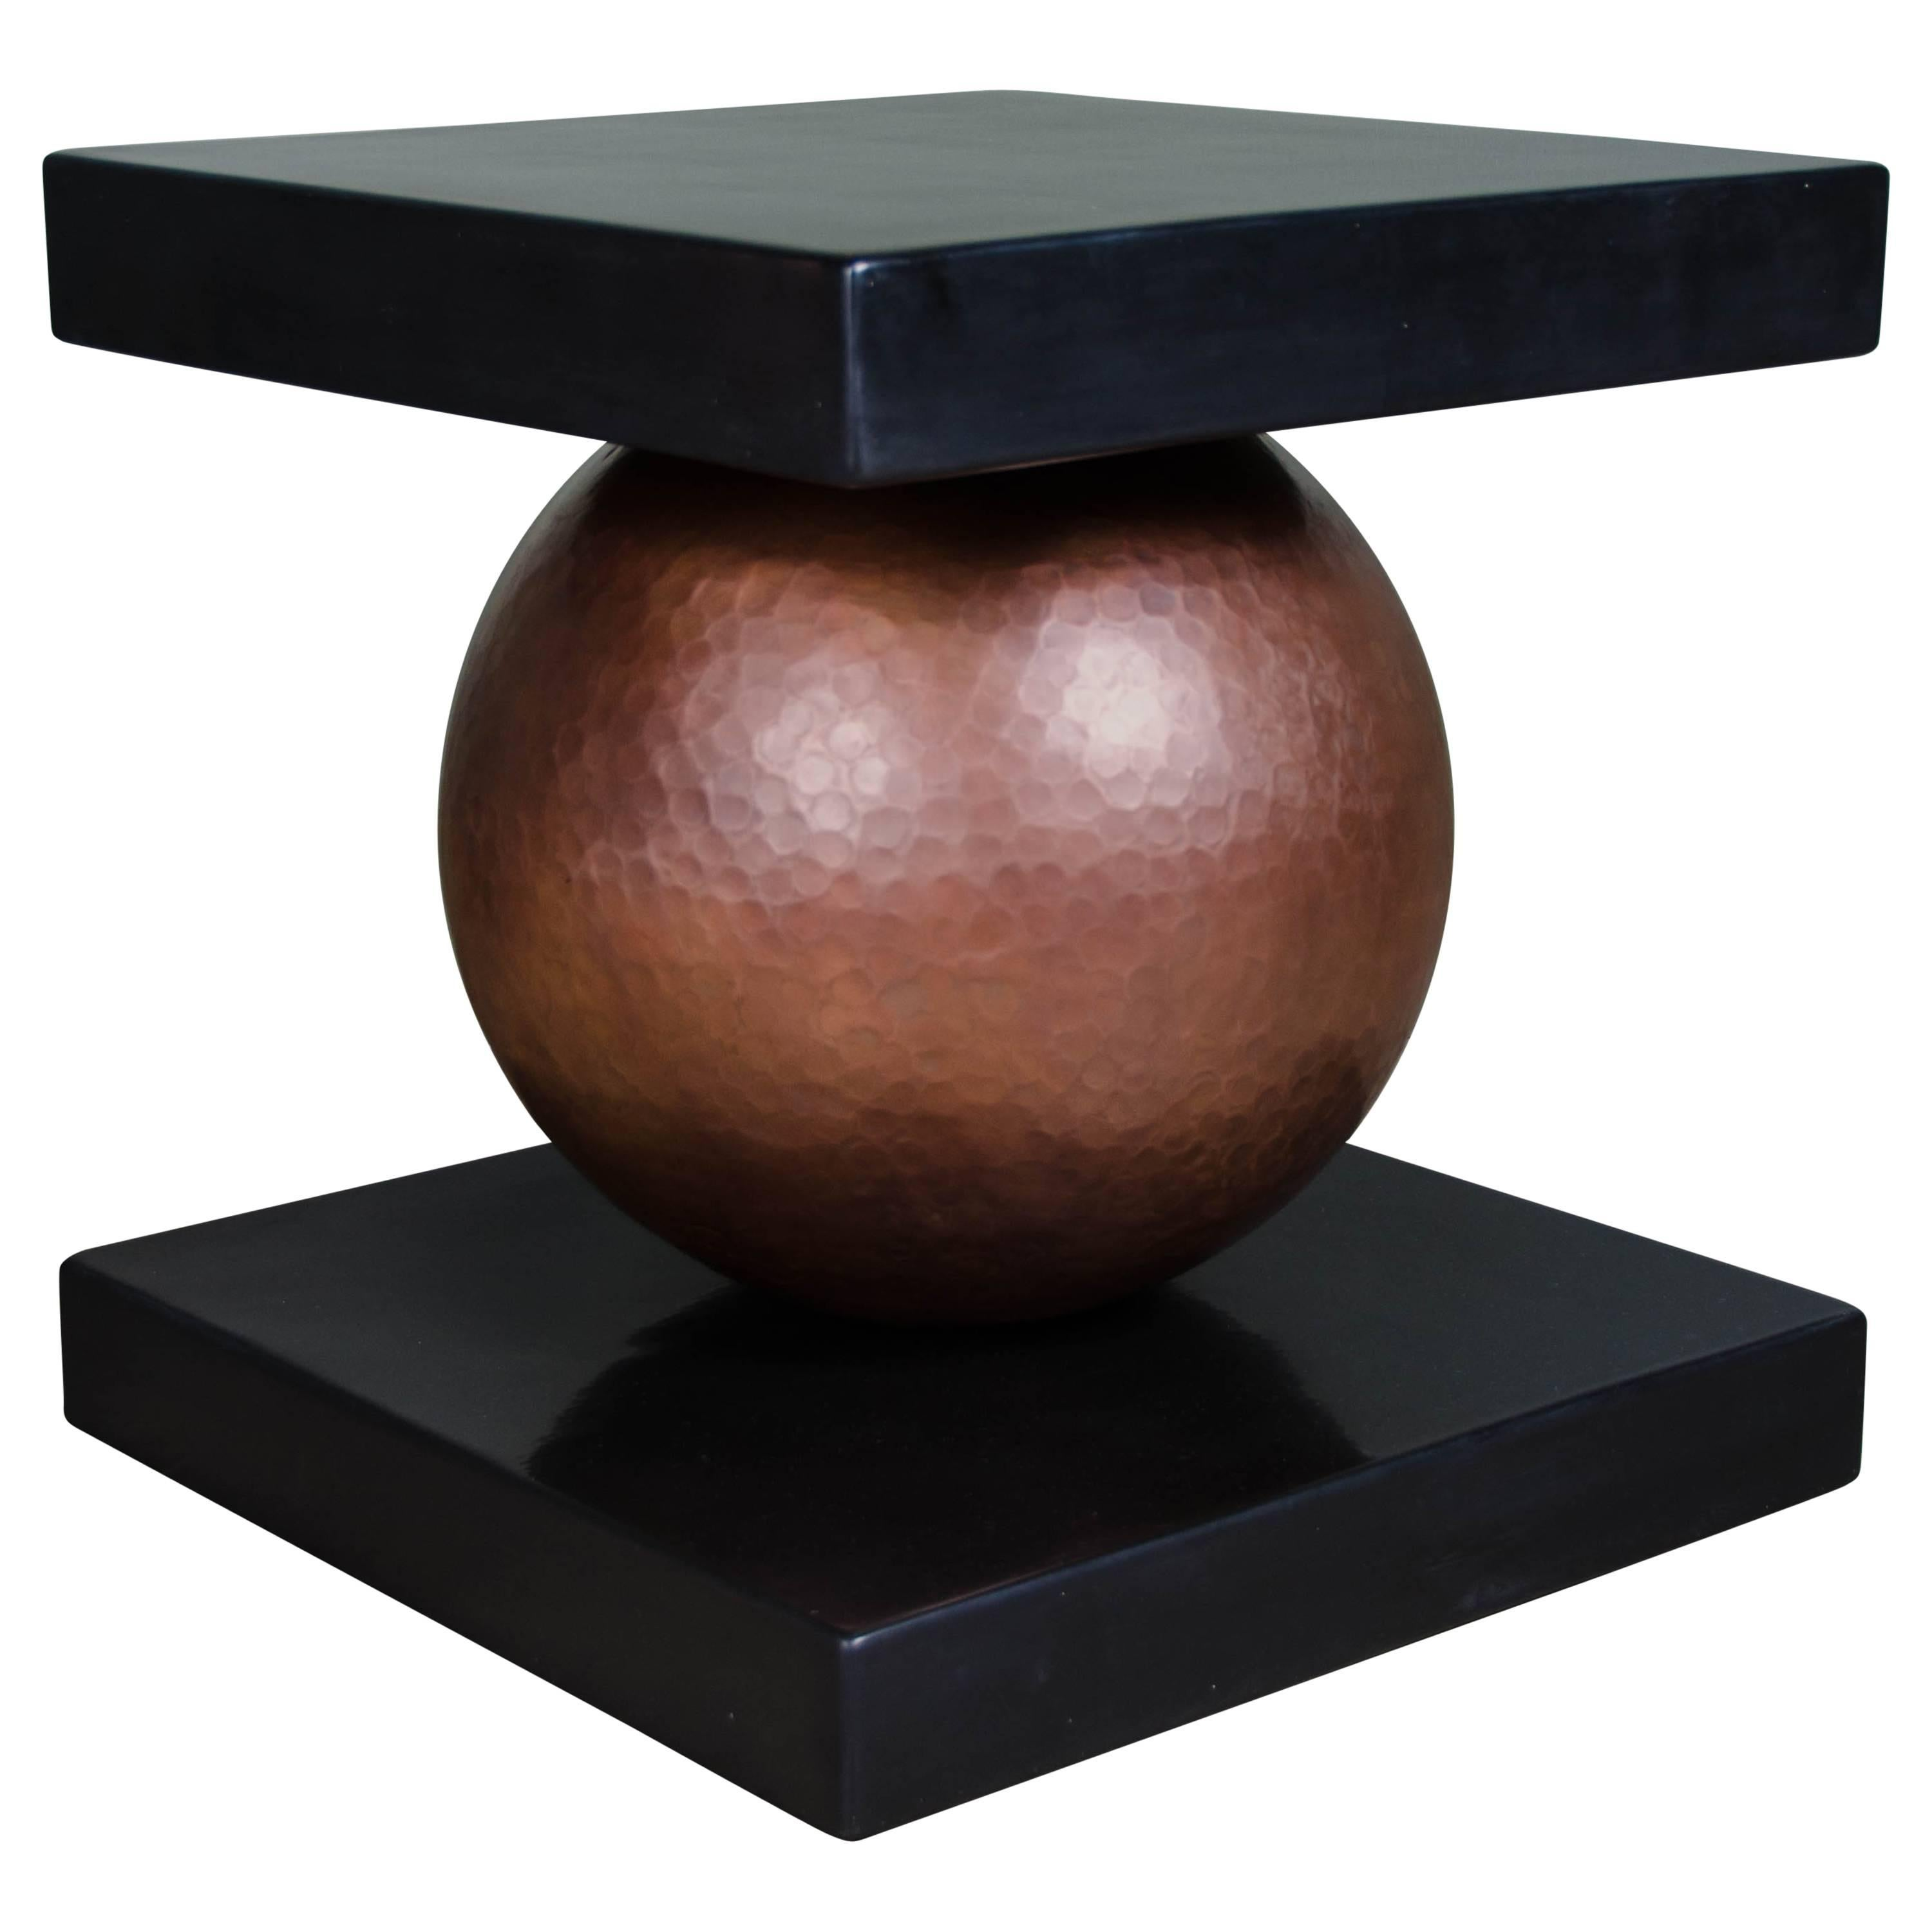 Copper Sphere Table with Square Lacquer Top by Robert Kuo, Limited Edition